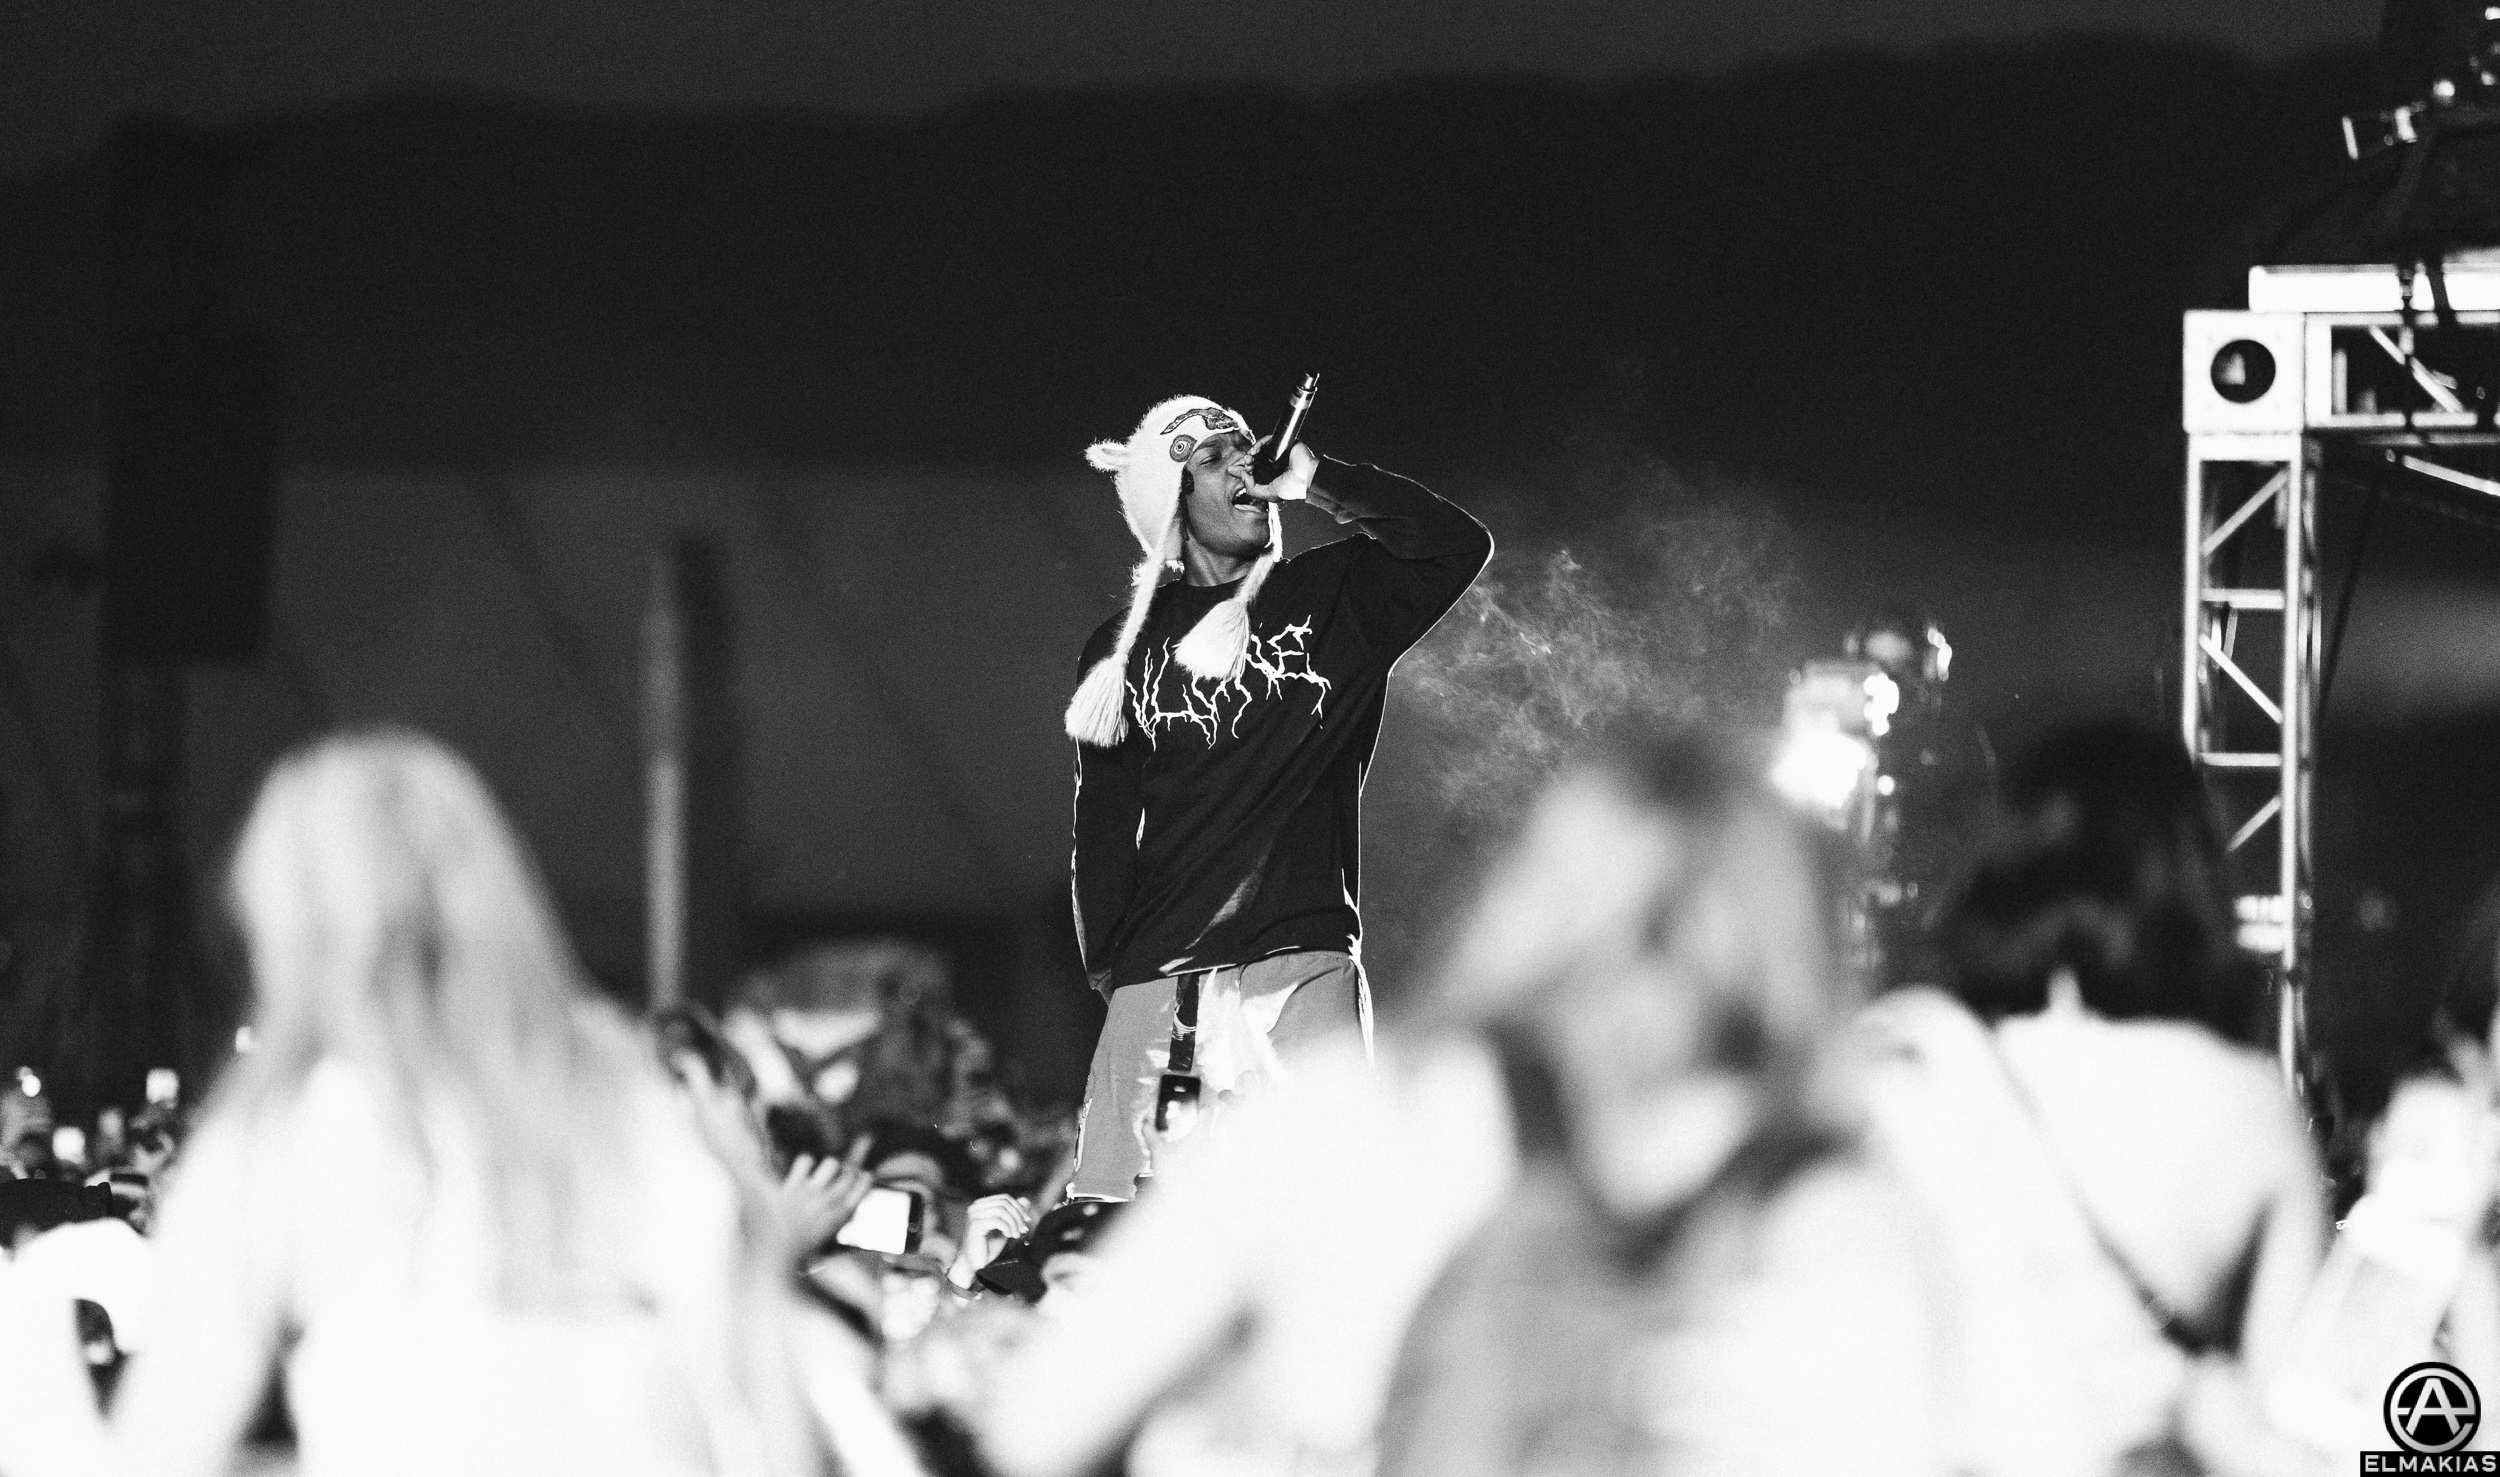 A$AP Rocky at Coachella 2016 by Adam Elmakias